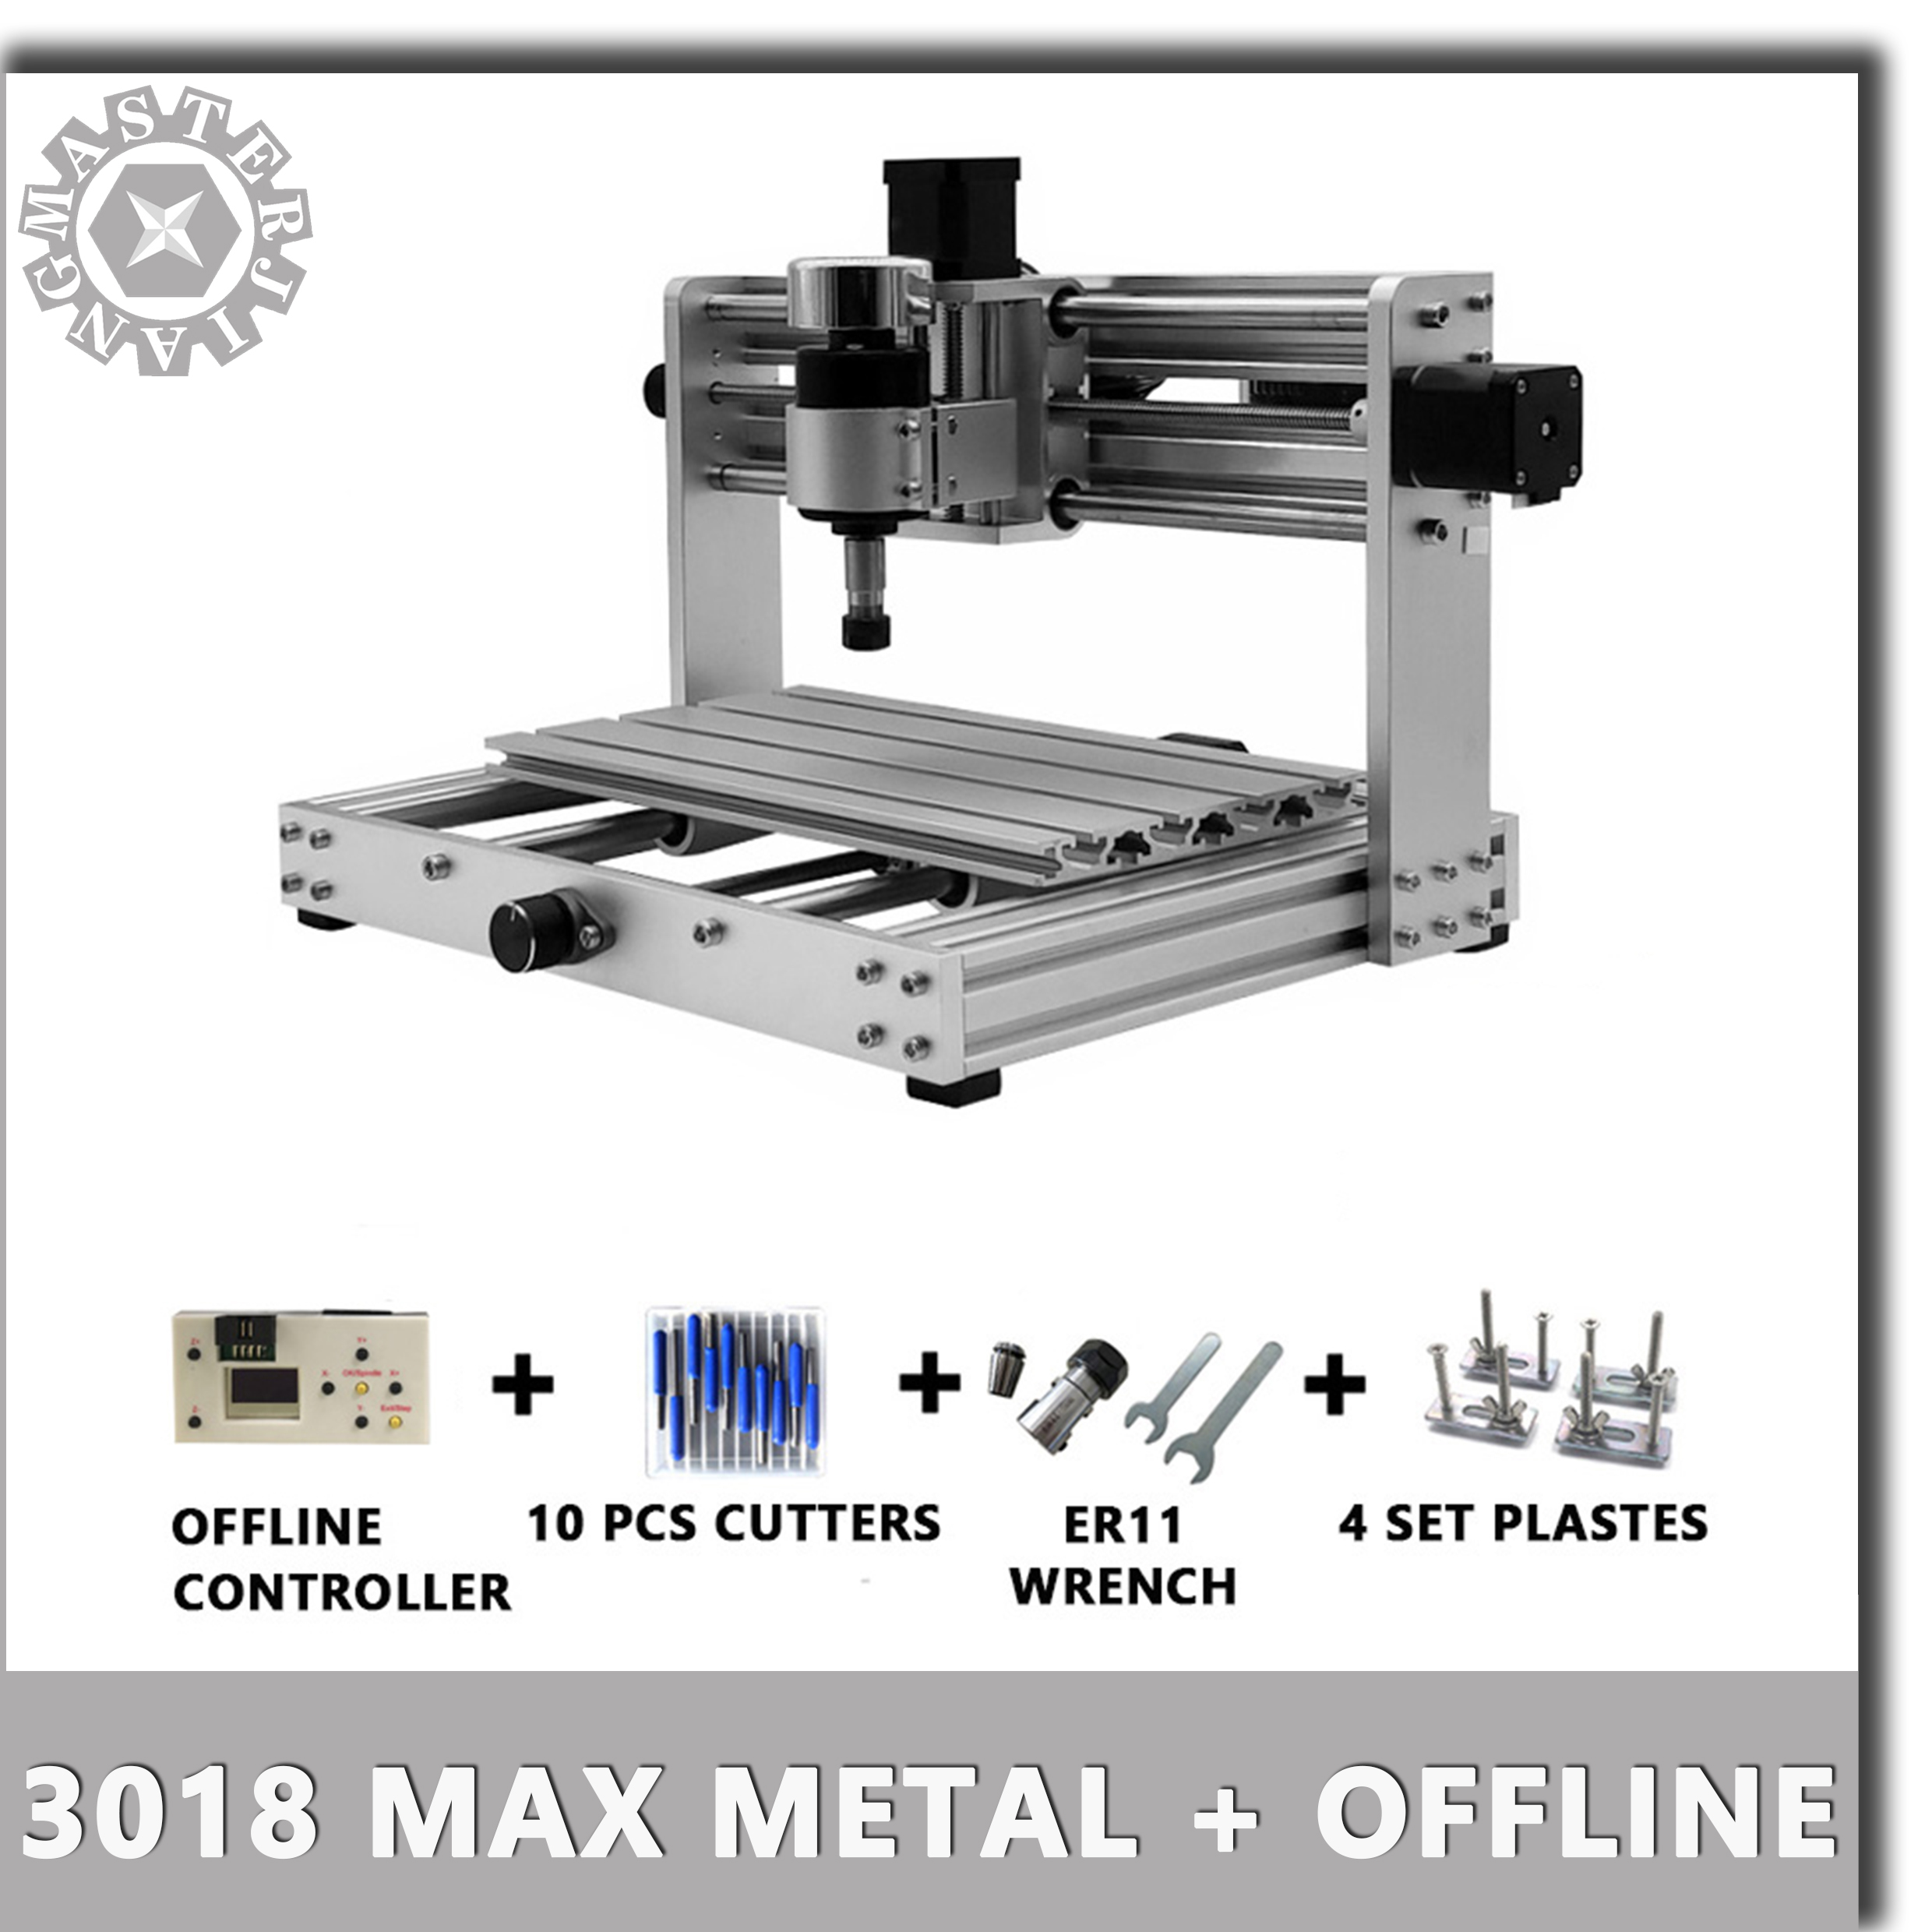 CNC 3018 Max Metal GRBL control with 200W Spindle offline control,3 Axis pcb Milling Laser machine, metal body, Diy Wood Router